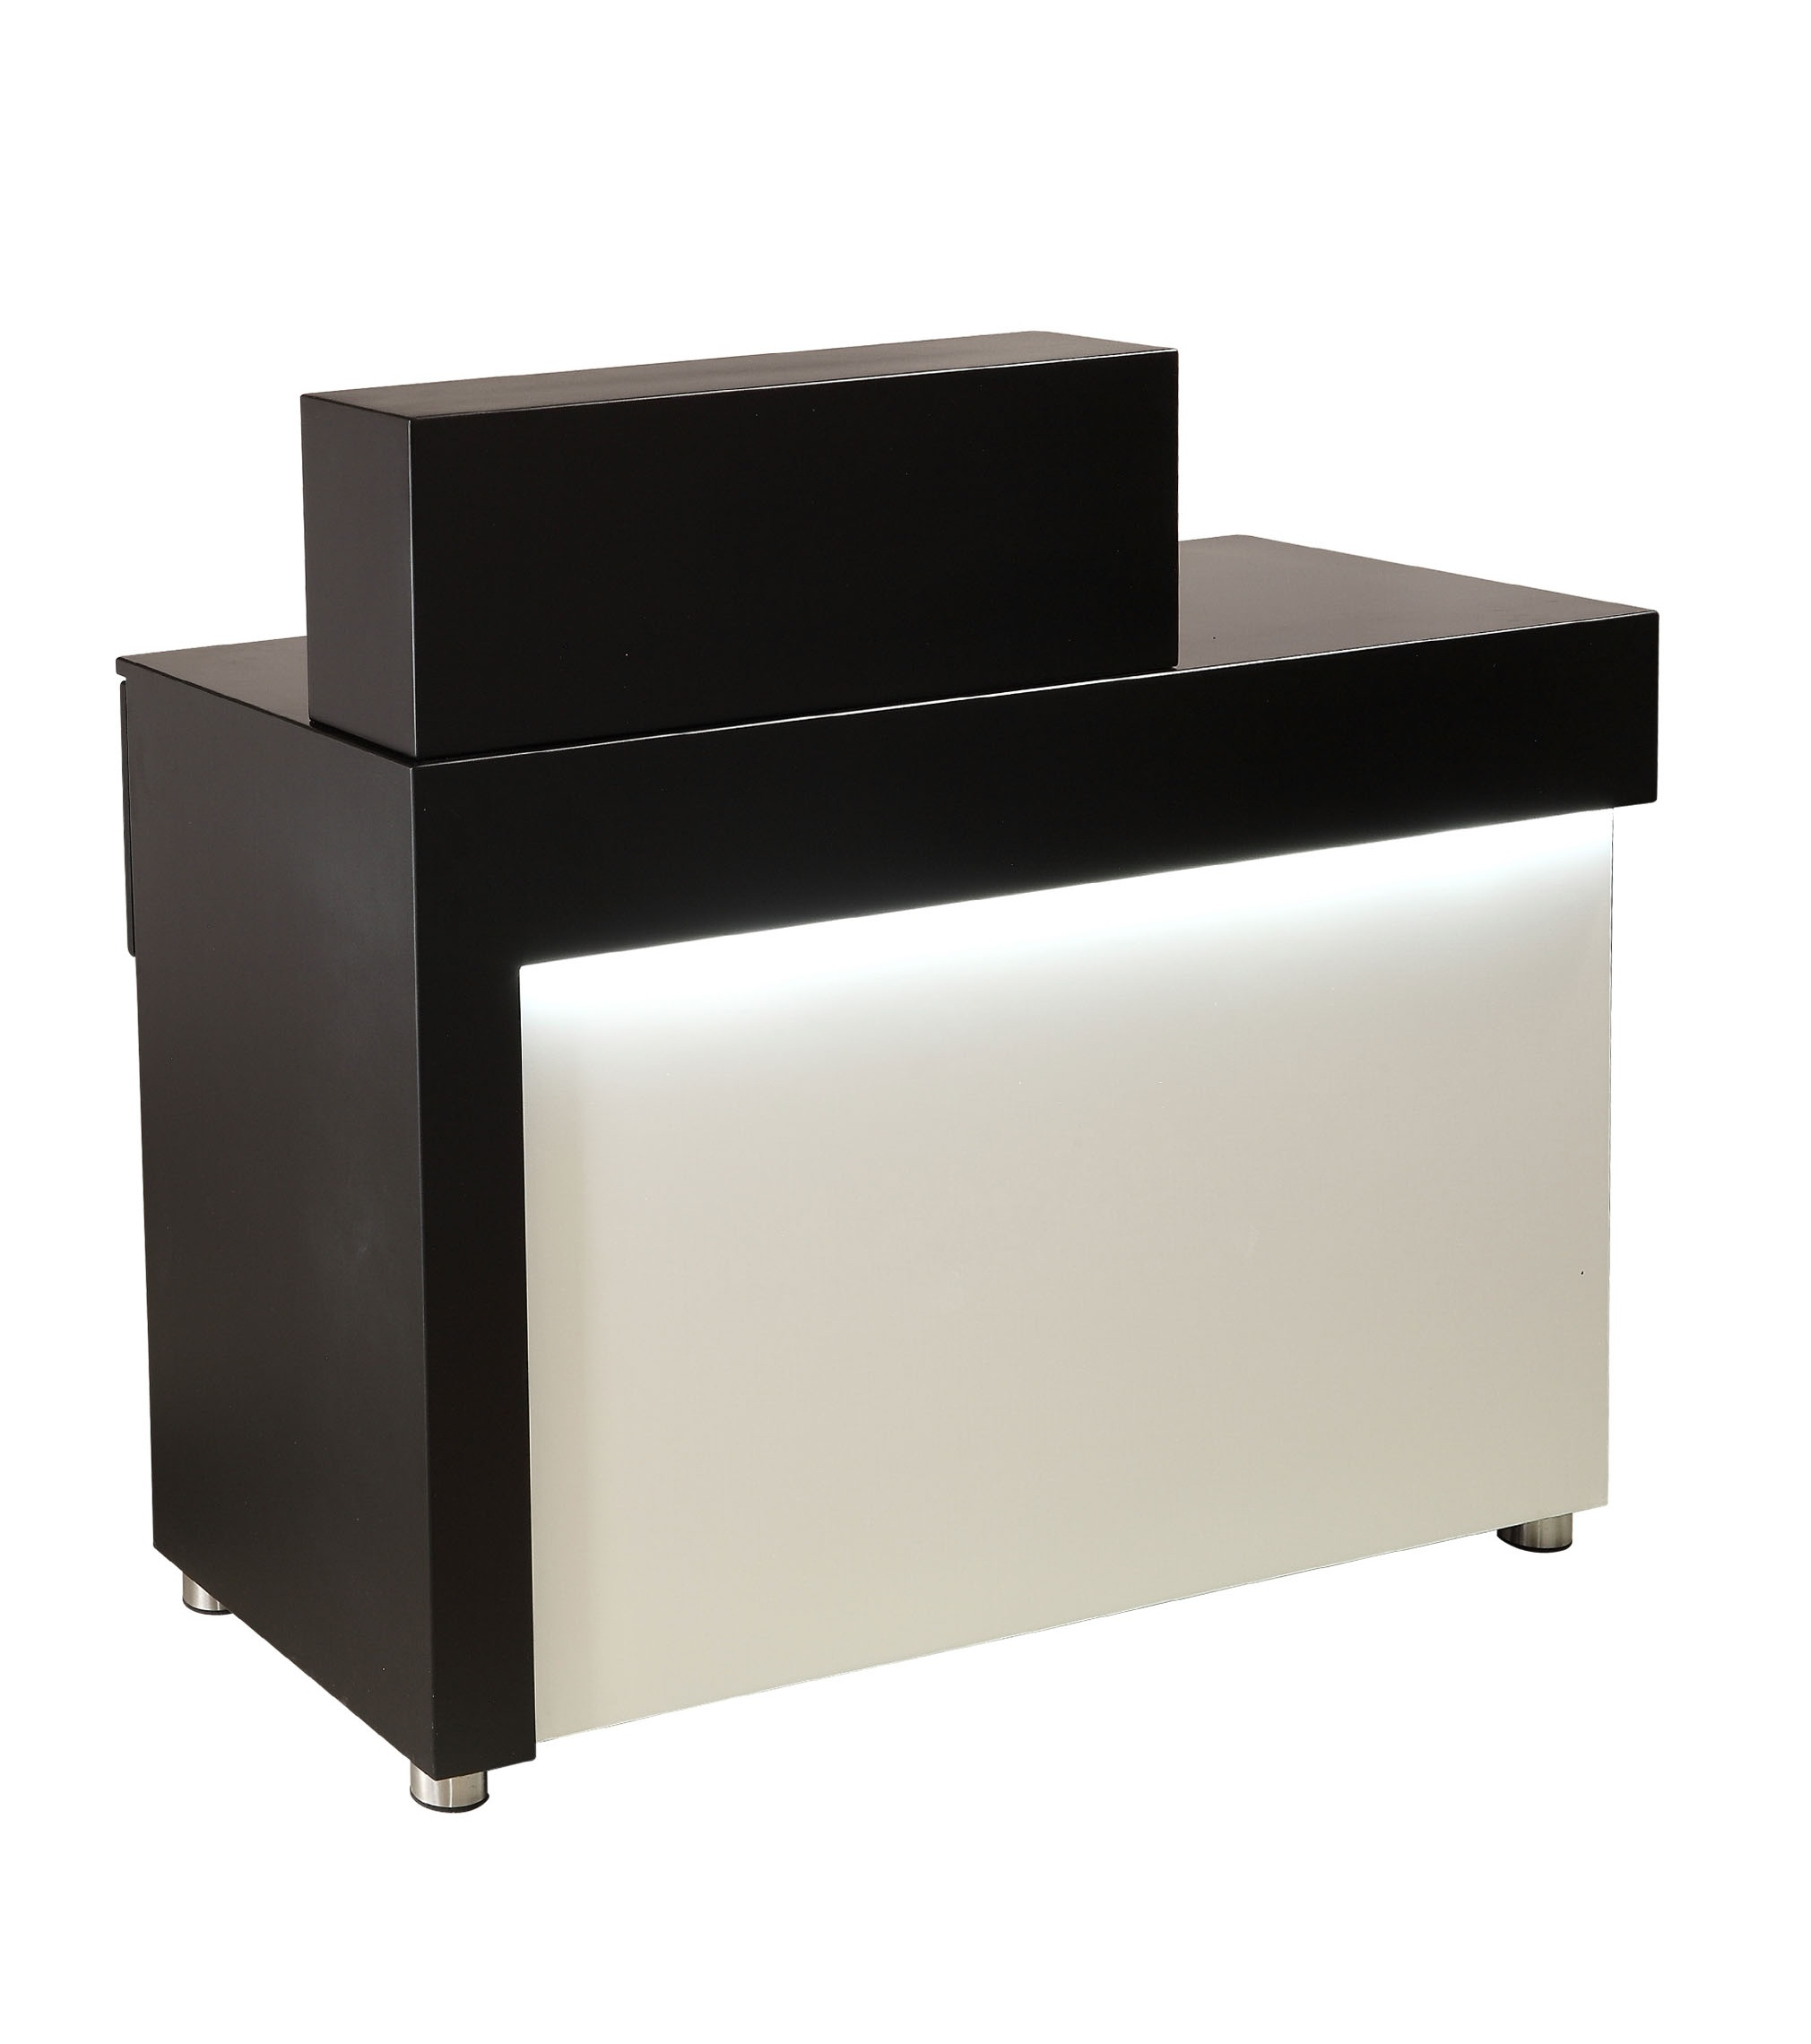 Black/White Brooklyn Salon Reception Desk by Premier